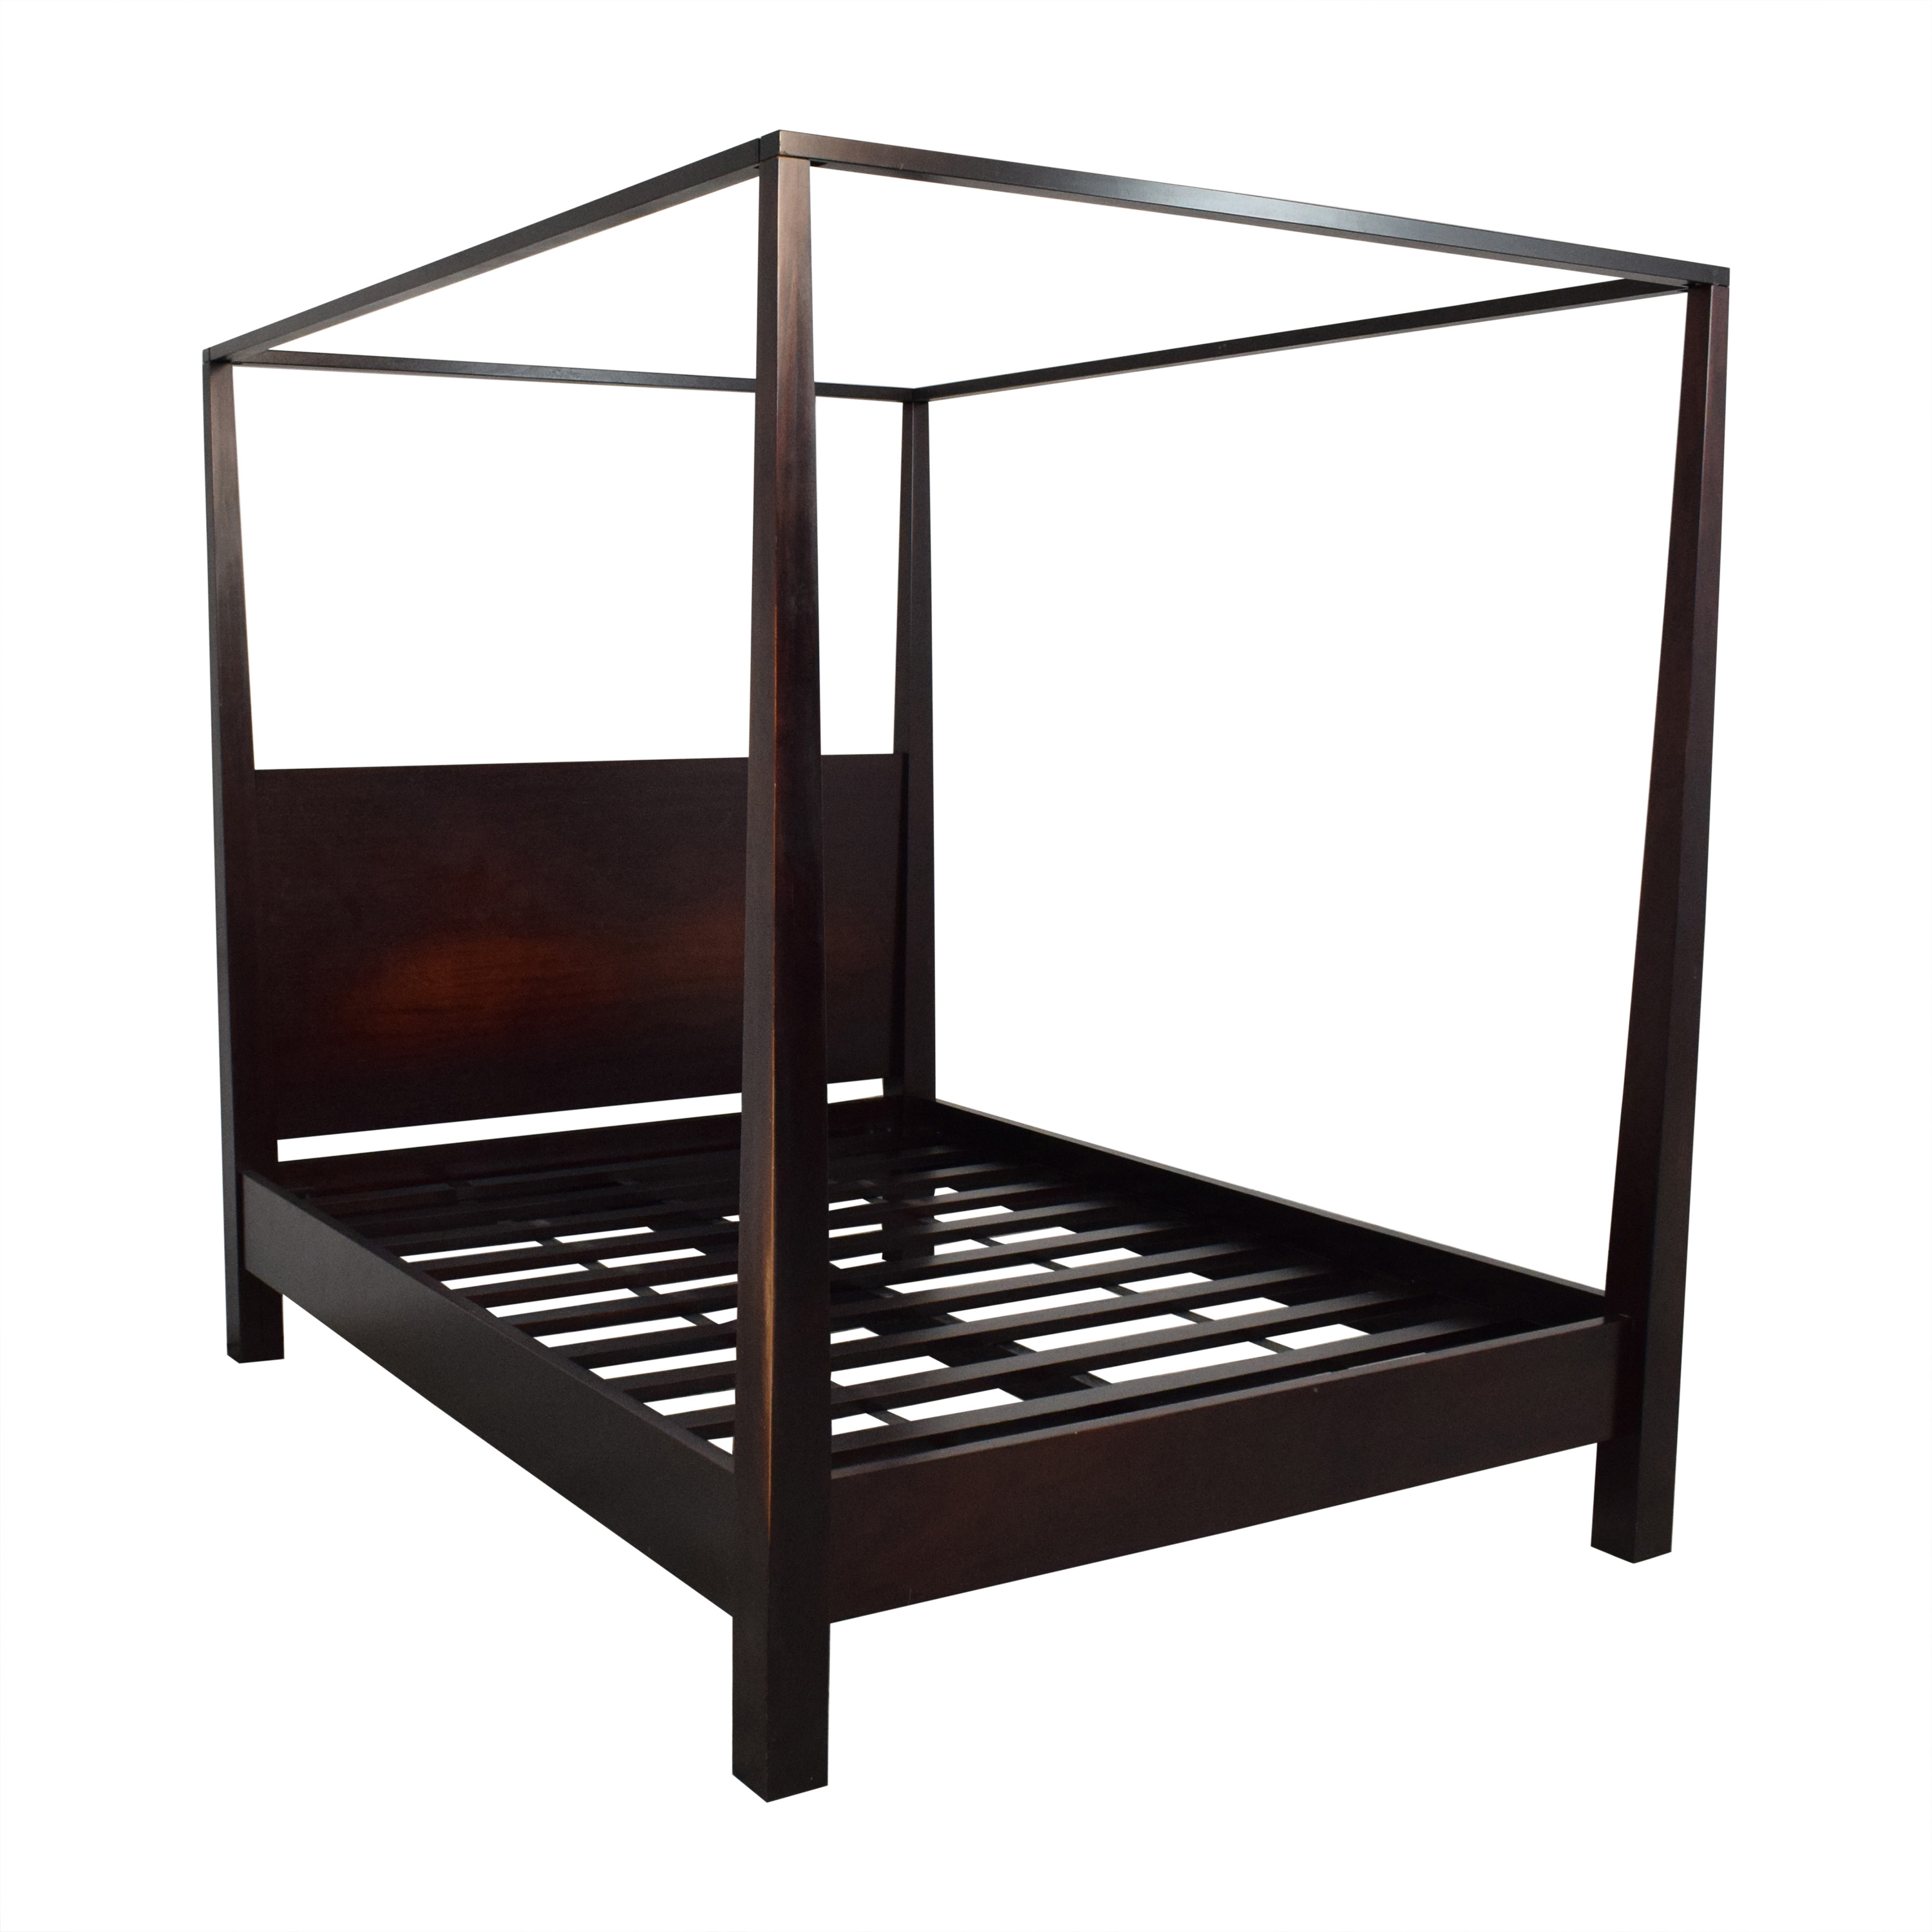 Crate & Barrel Crate & Barrel Brown Farmhouse Style Canopy Queen Bed dimensions